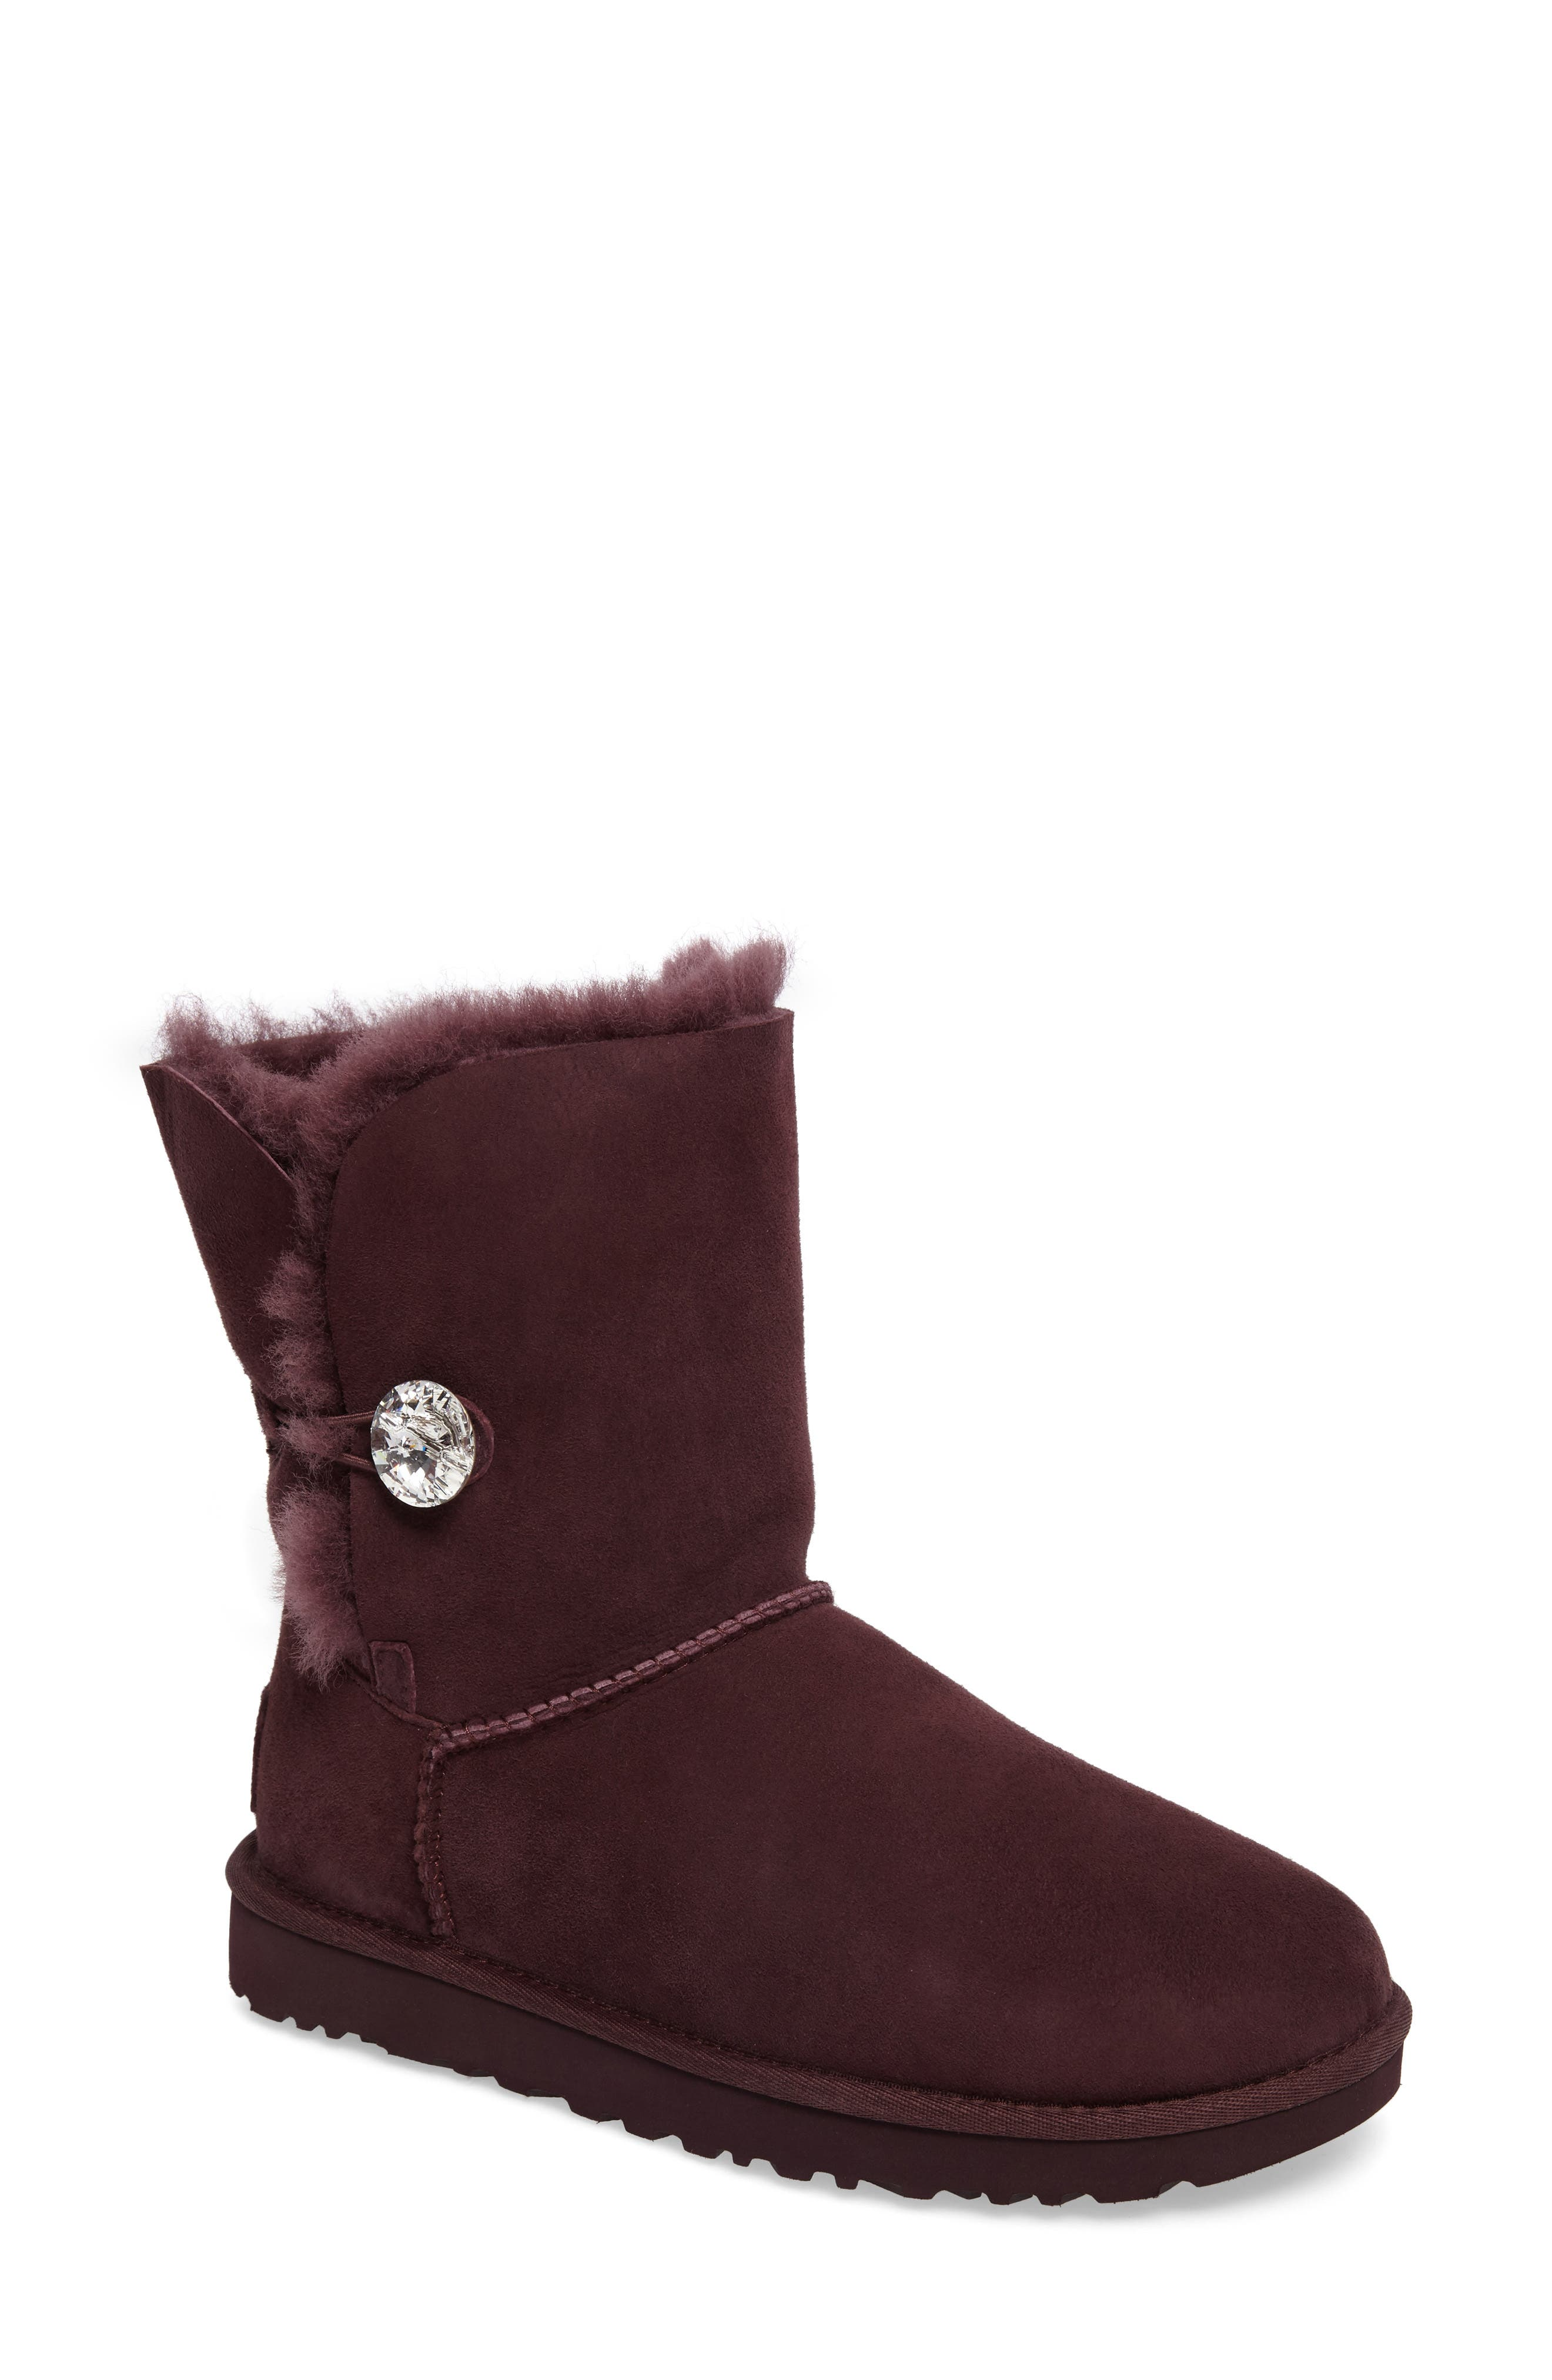 UGG Bailey Button Boots | Nordstrom